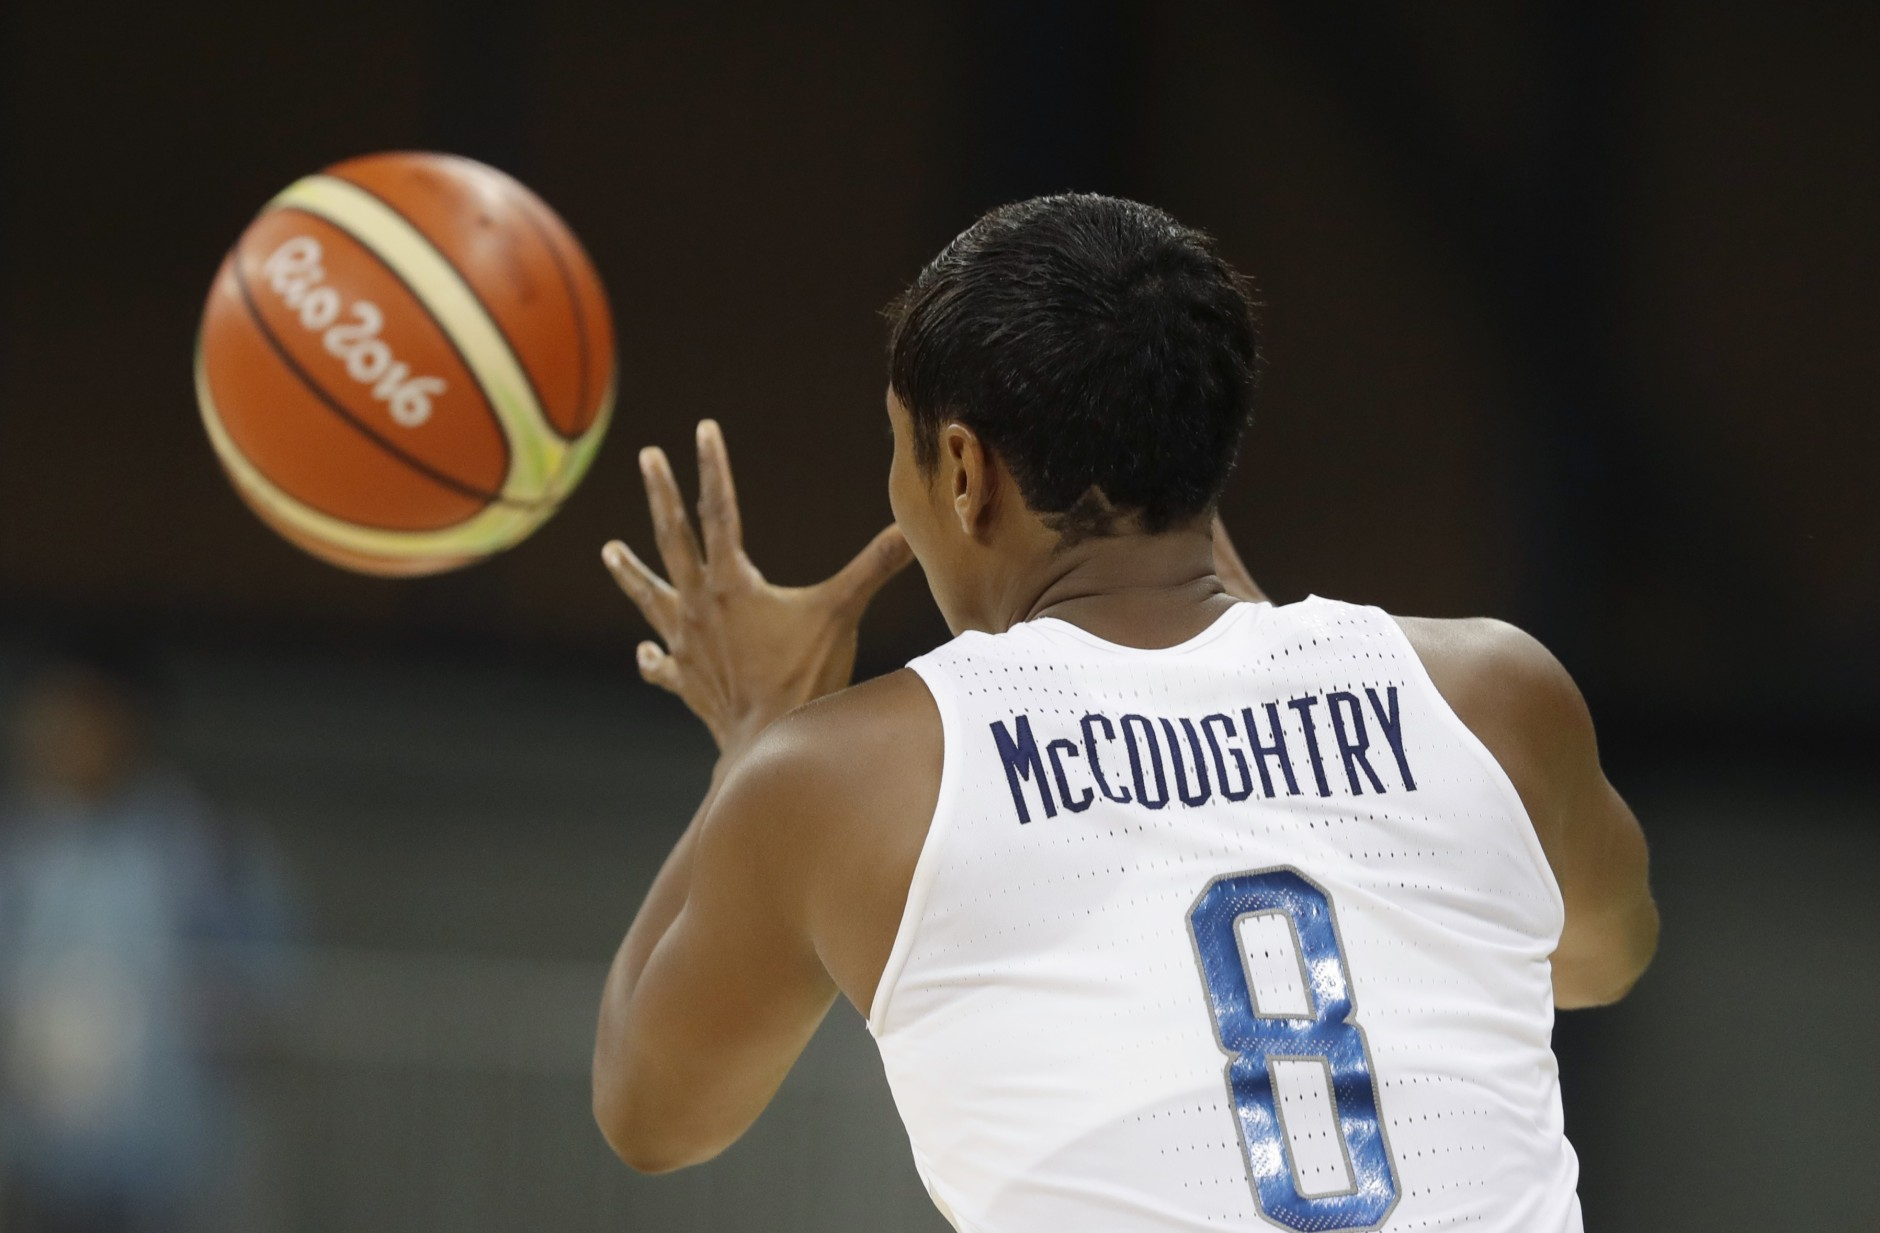 United States guard Angel McCoughtry sports a star and stripes cut into her hair during the second half of a women's basketball game against Serbia at the Youth Center at the 2016 Summer Olympics in Rio de Janeiro, Brazil, Wednesday, Aug. 10, 2016. The United States defeated Serbia 110-84. (AP Photo/Carlos Osorio)